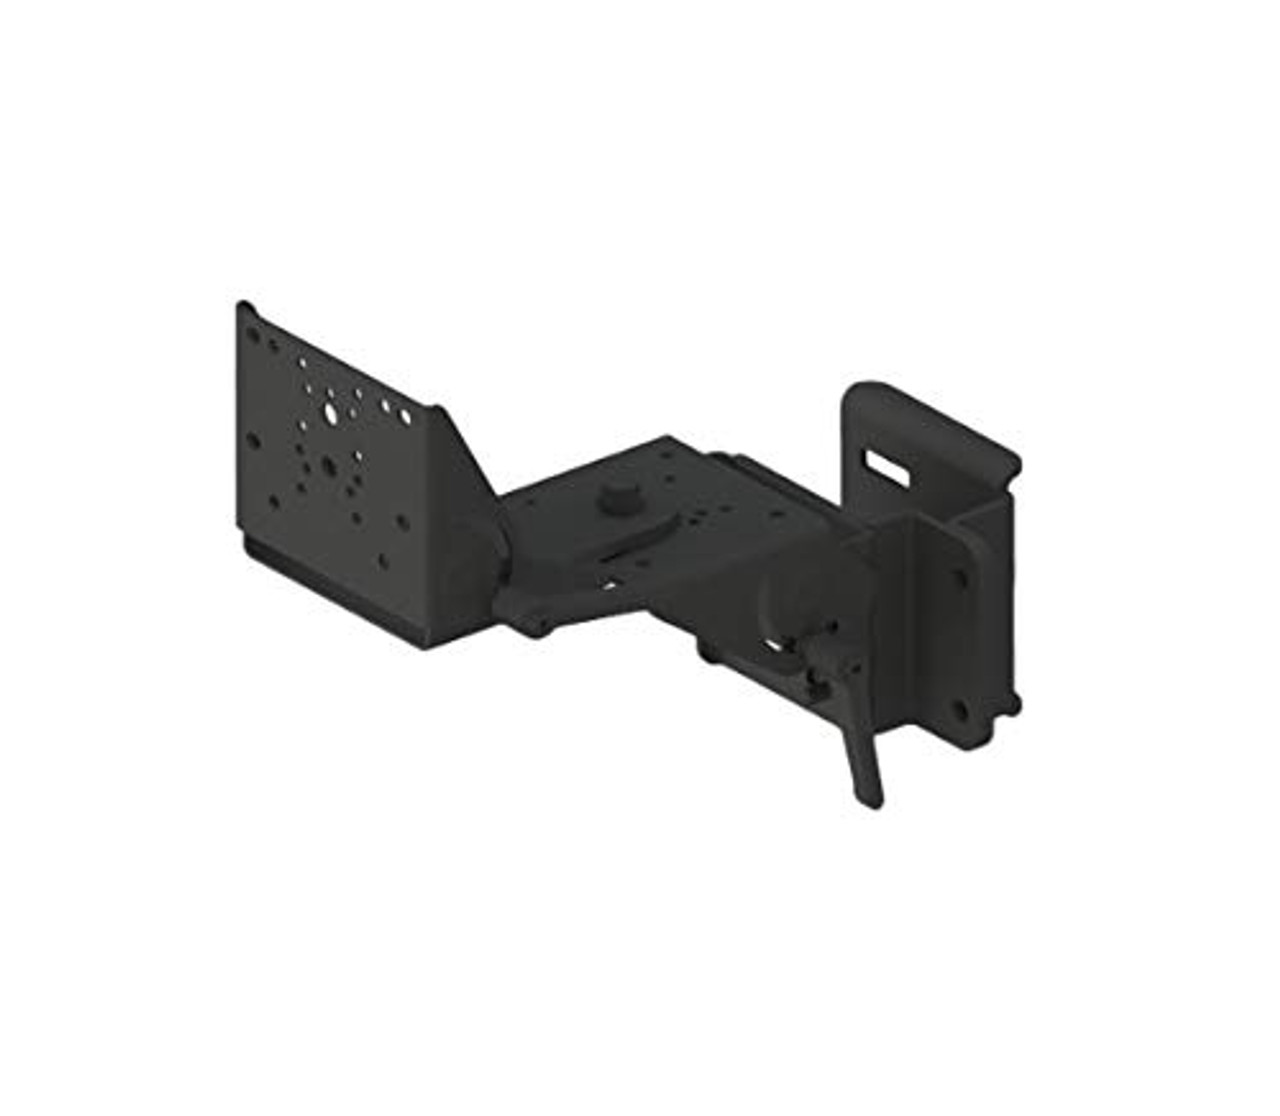 Sit Down Forklift mounting Yale and Hyster (Also fits Crown C-5) | 0309X92VYV9